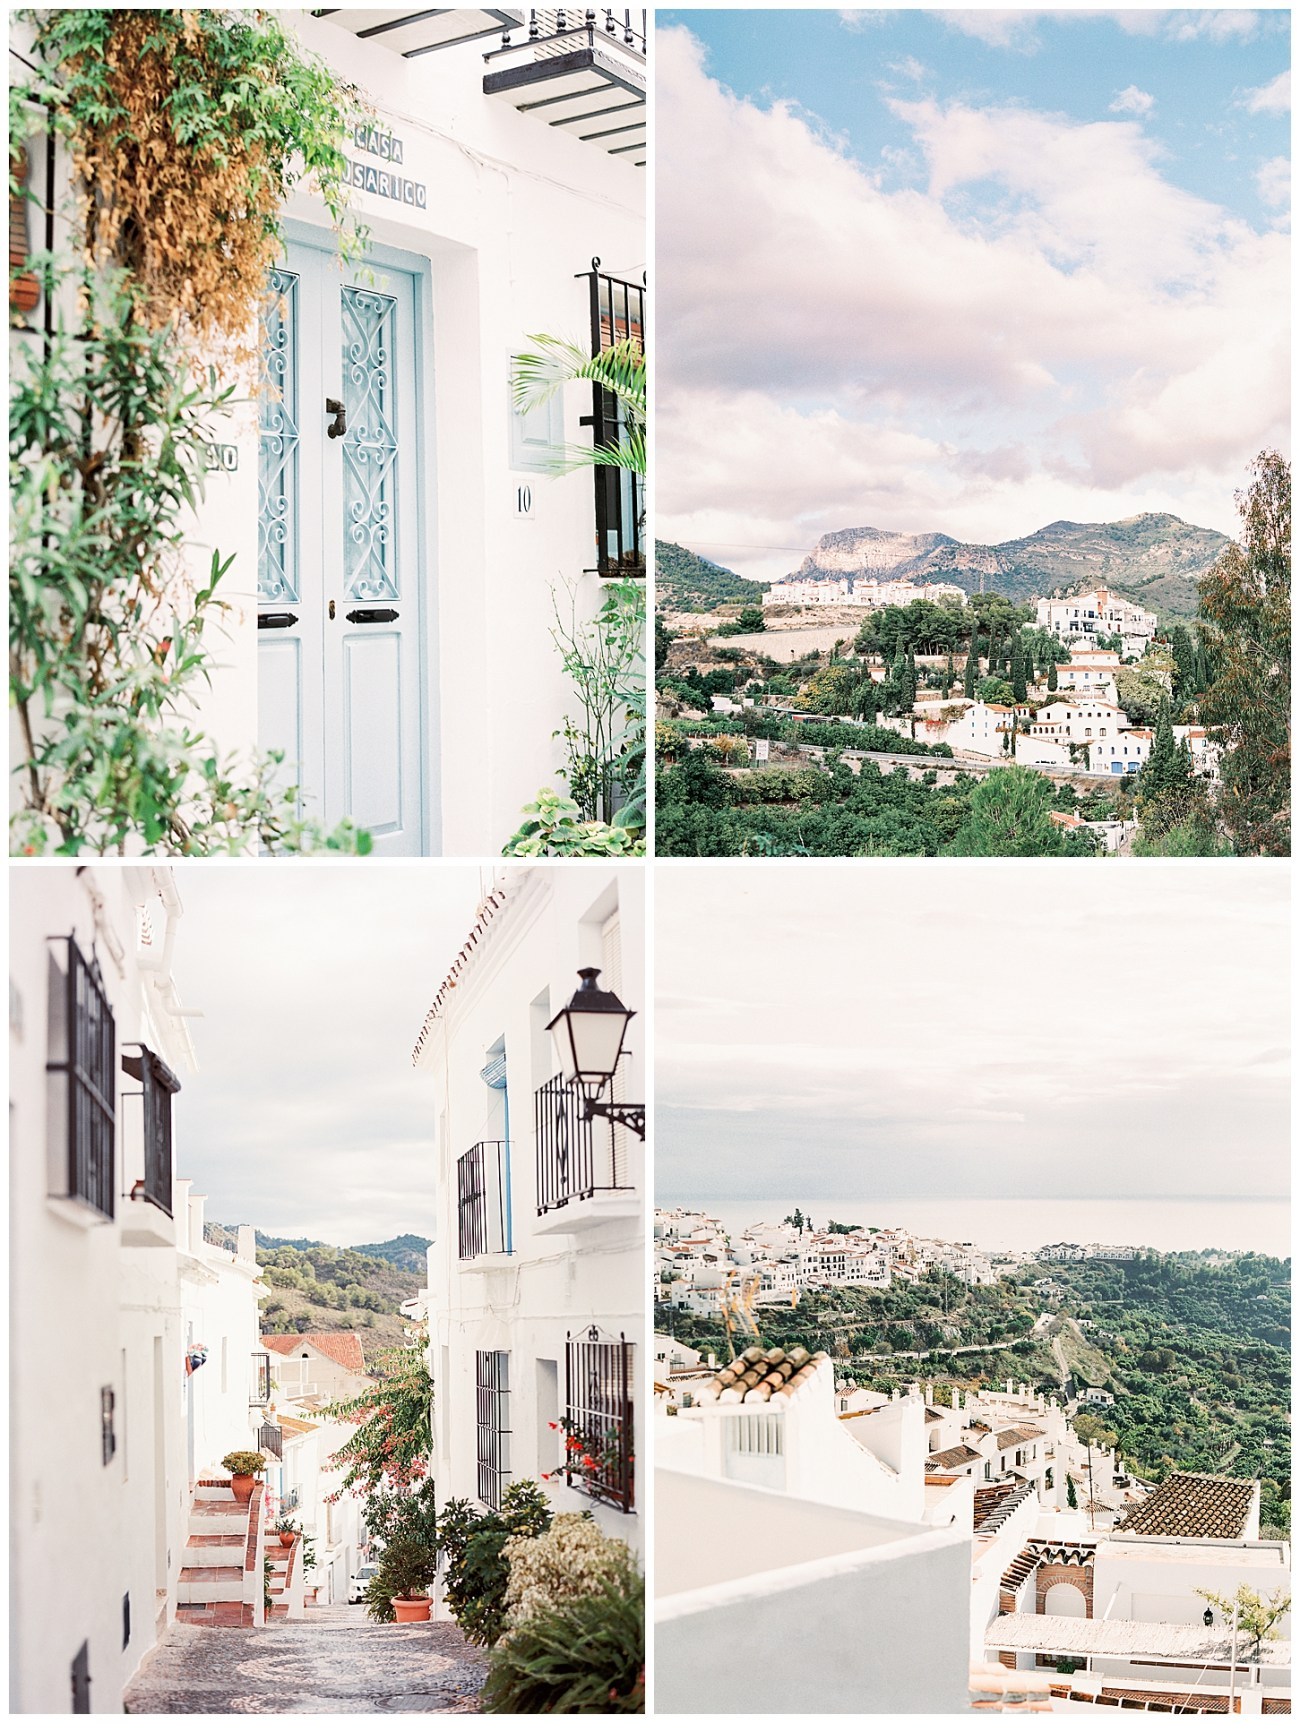 Frigiliana Spain Best Pueblos Blanco White Village